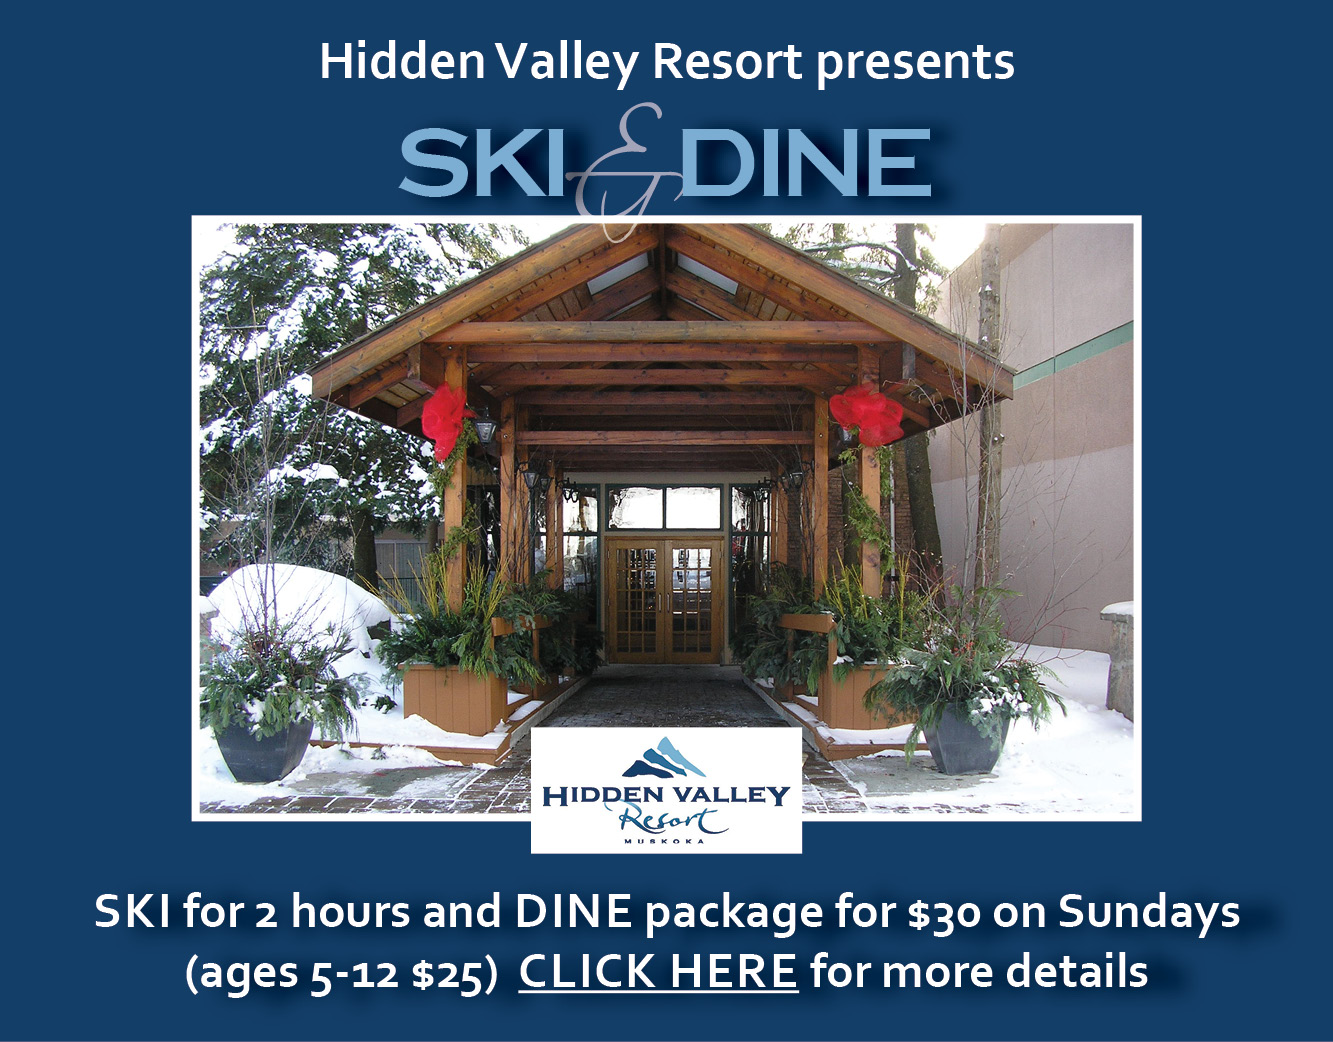 Hidden Valley Ski & Dine